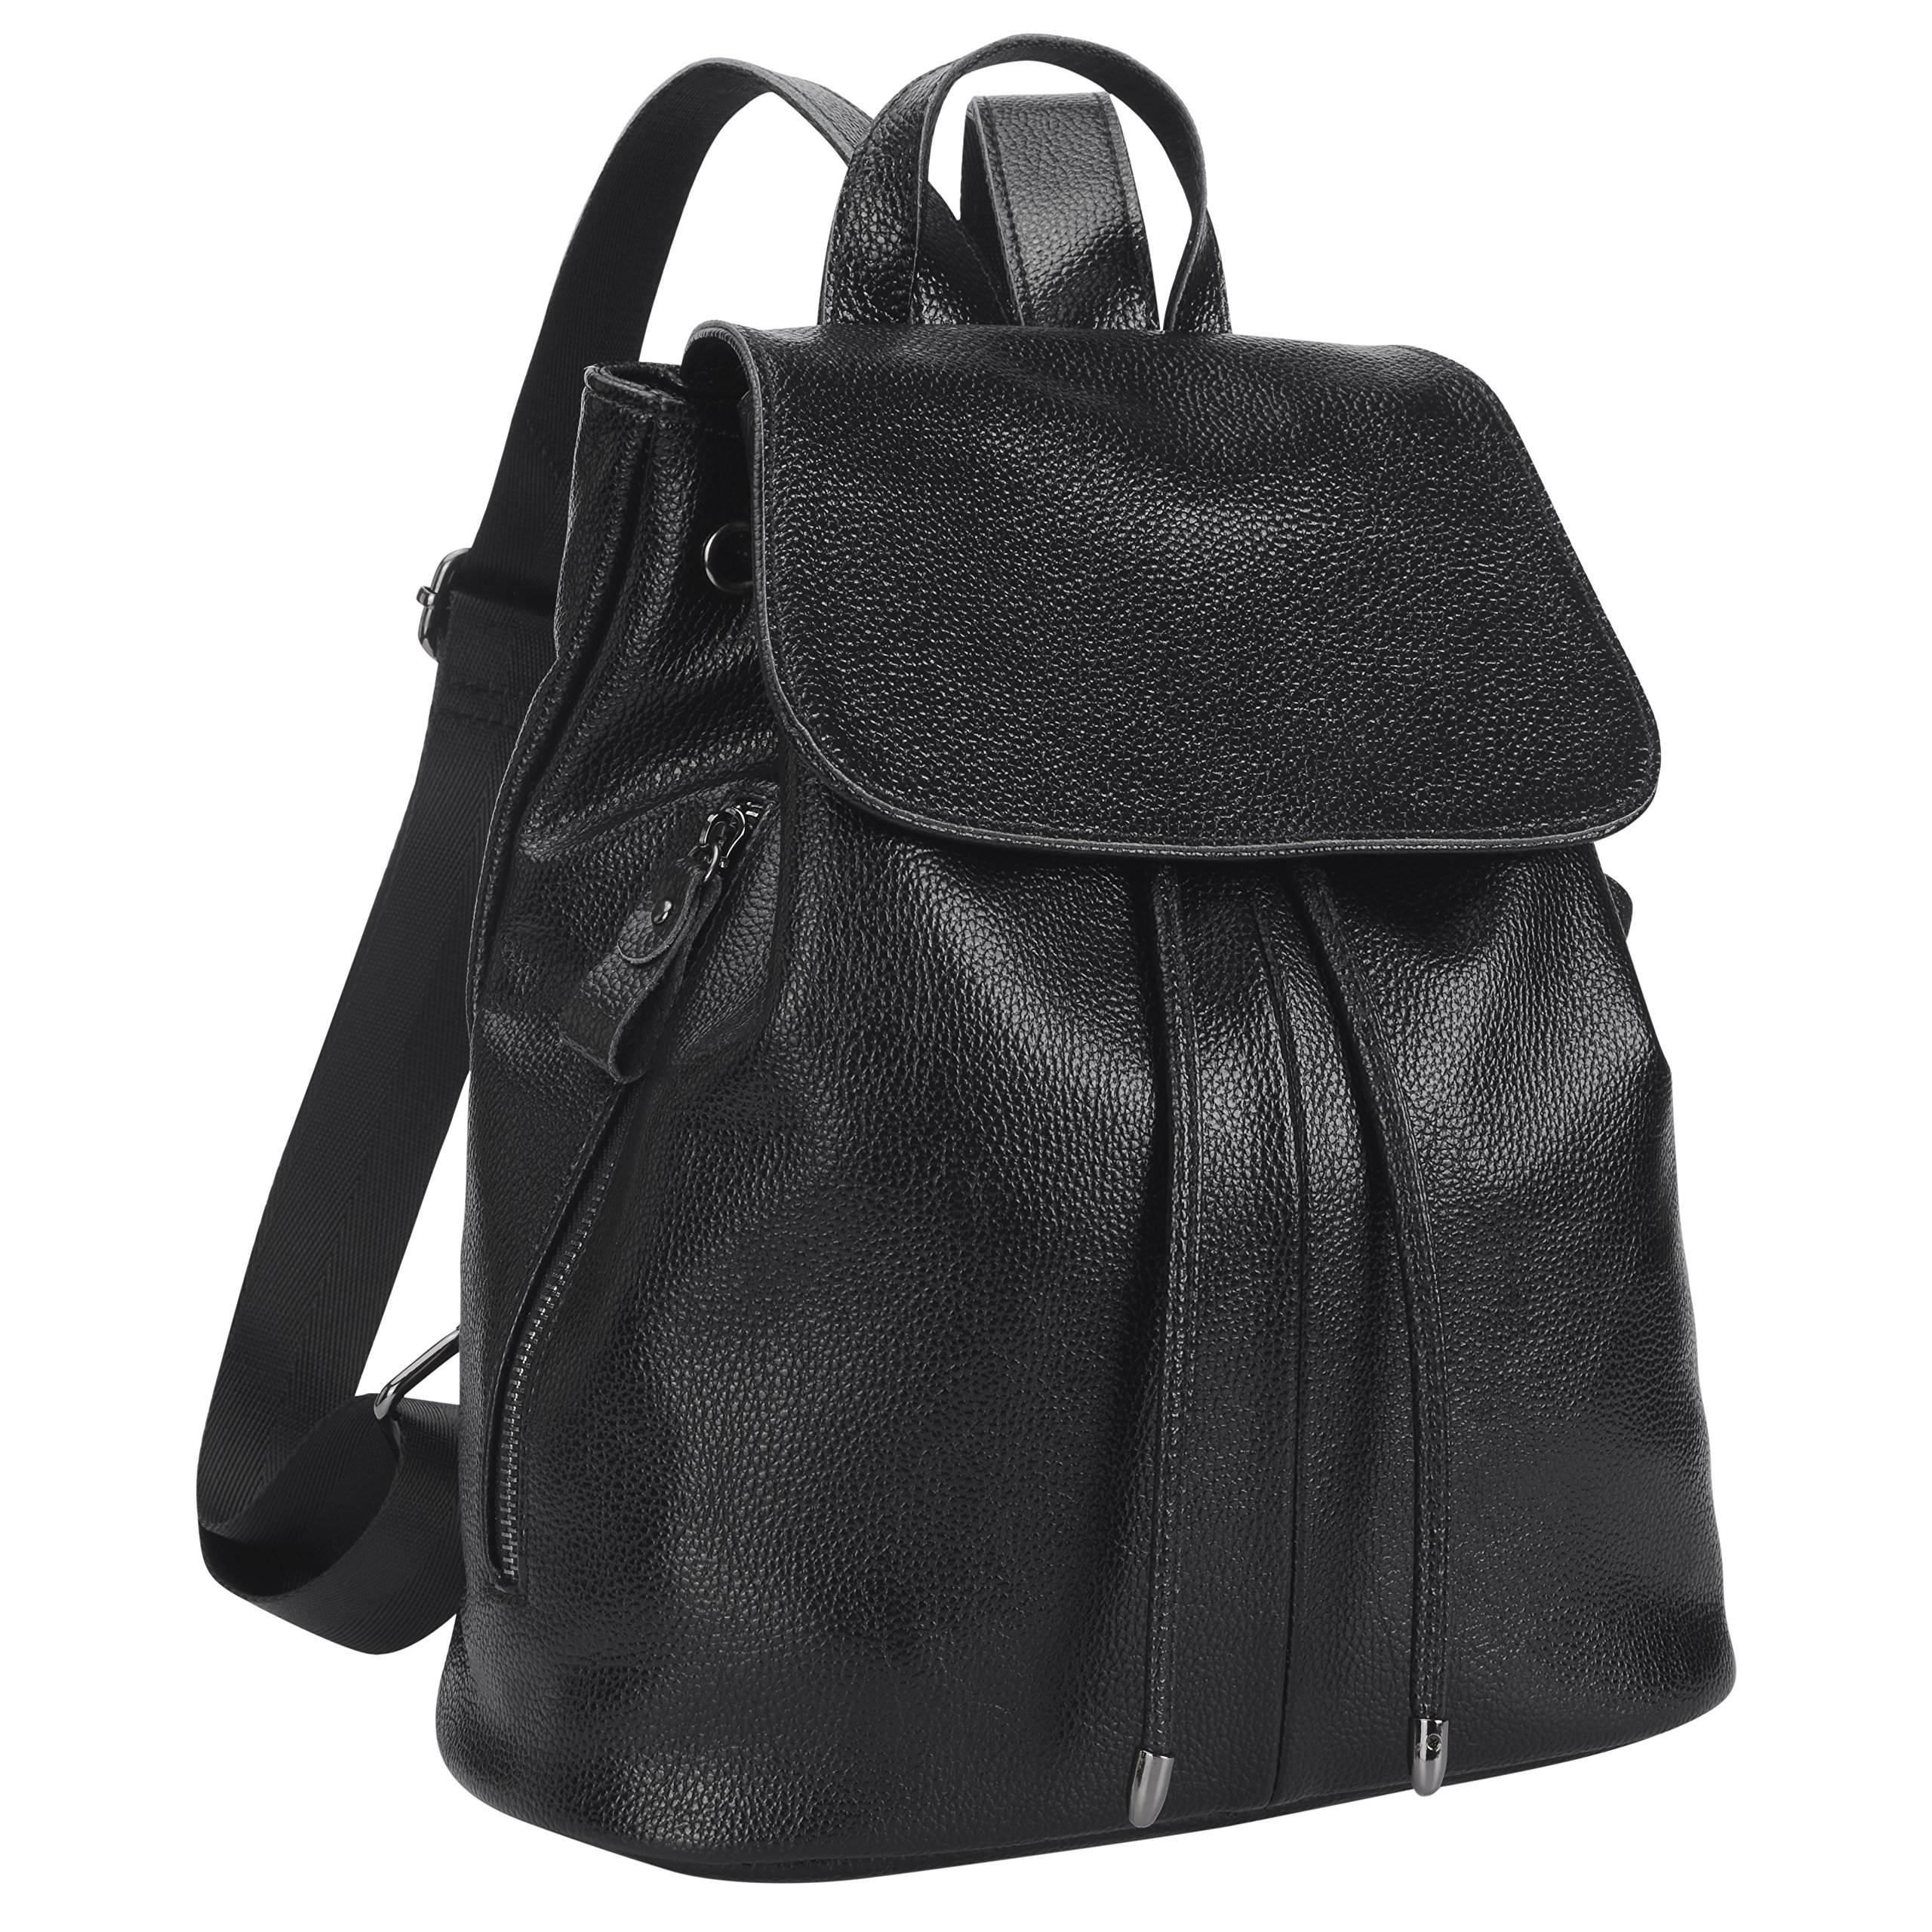 Belle & Lily Valentines Day Gift Black Genuine Pebbled Leather Backpack Purse Casual Daypack for Girls Ladies Women Schoolbag Travelling Shopping (BL02)